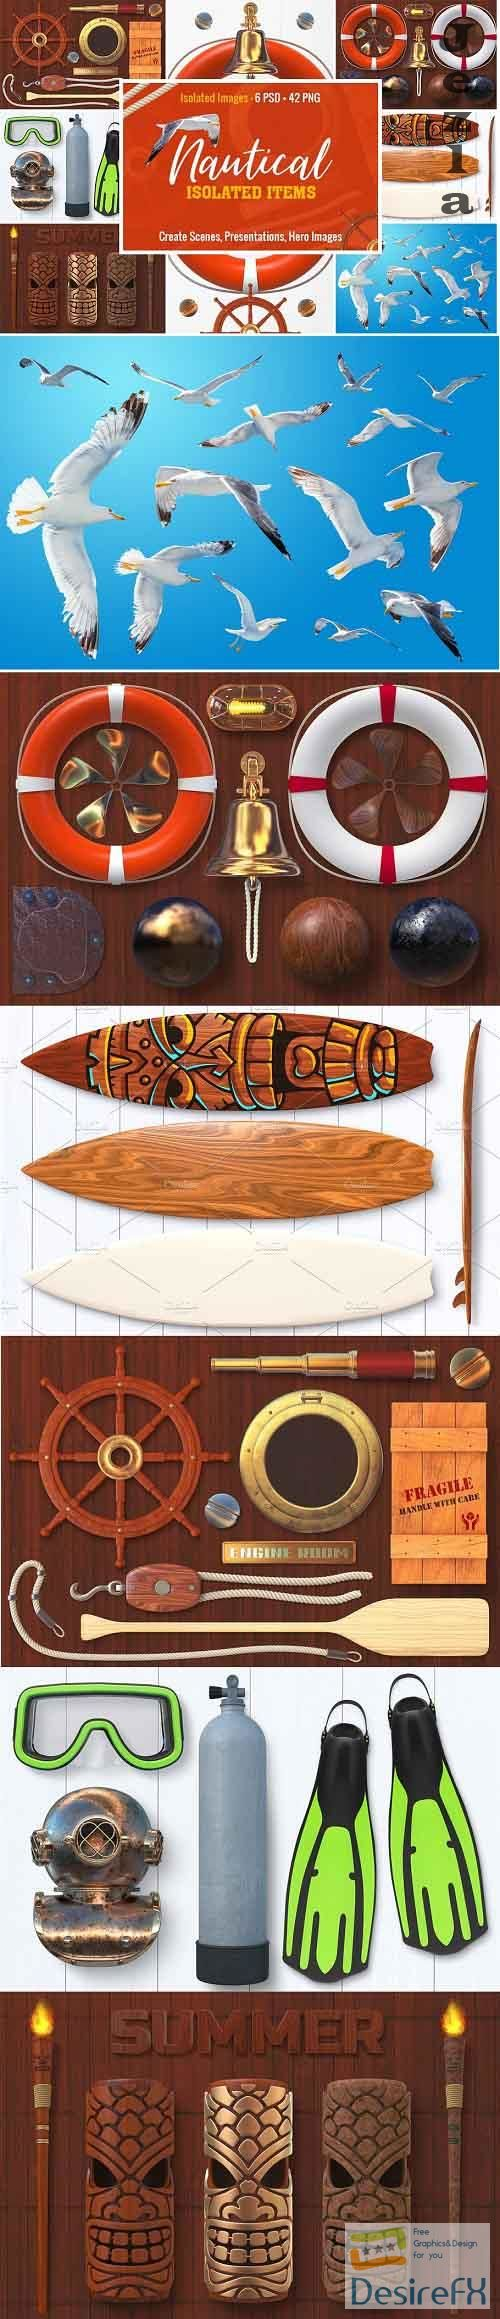 Isolated Nautical Items - 1777034